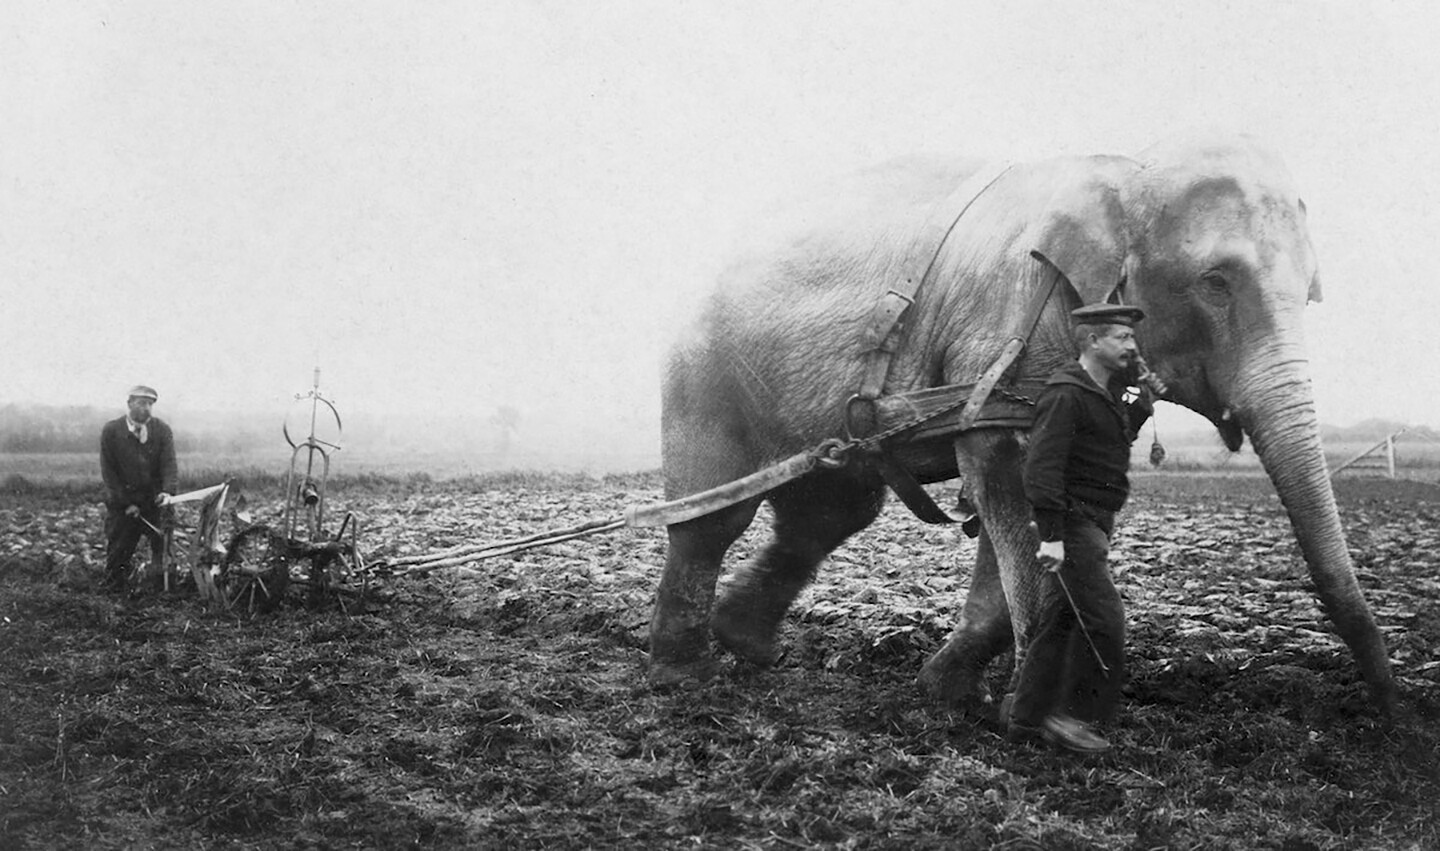 Closing Editorial E Flux Architecture Inside Flats Jazmine Black A Circus Elephant From Belgian Zoo Working On Farm During World War I After Horses And Mules Were Drafted To Aid In The Effort 1915